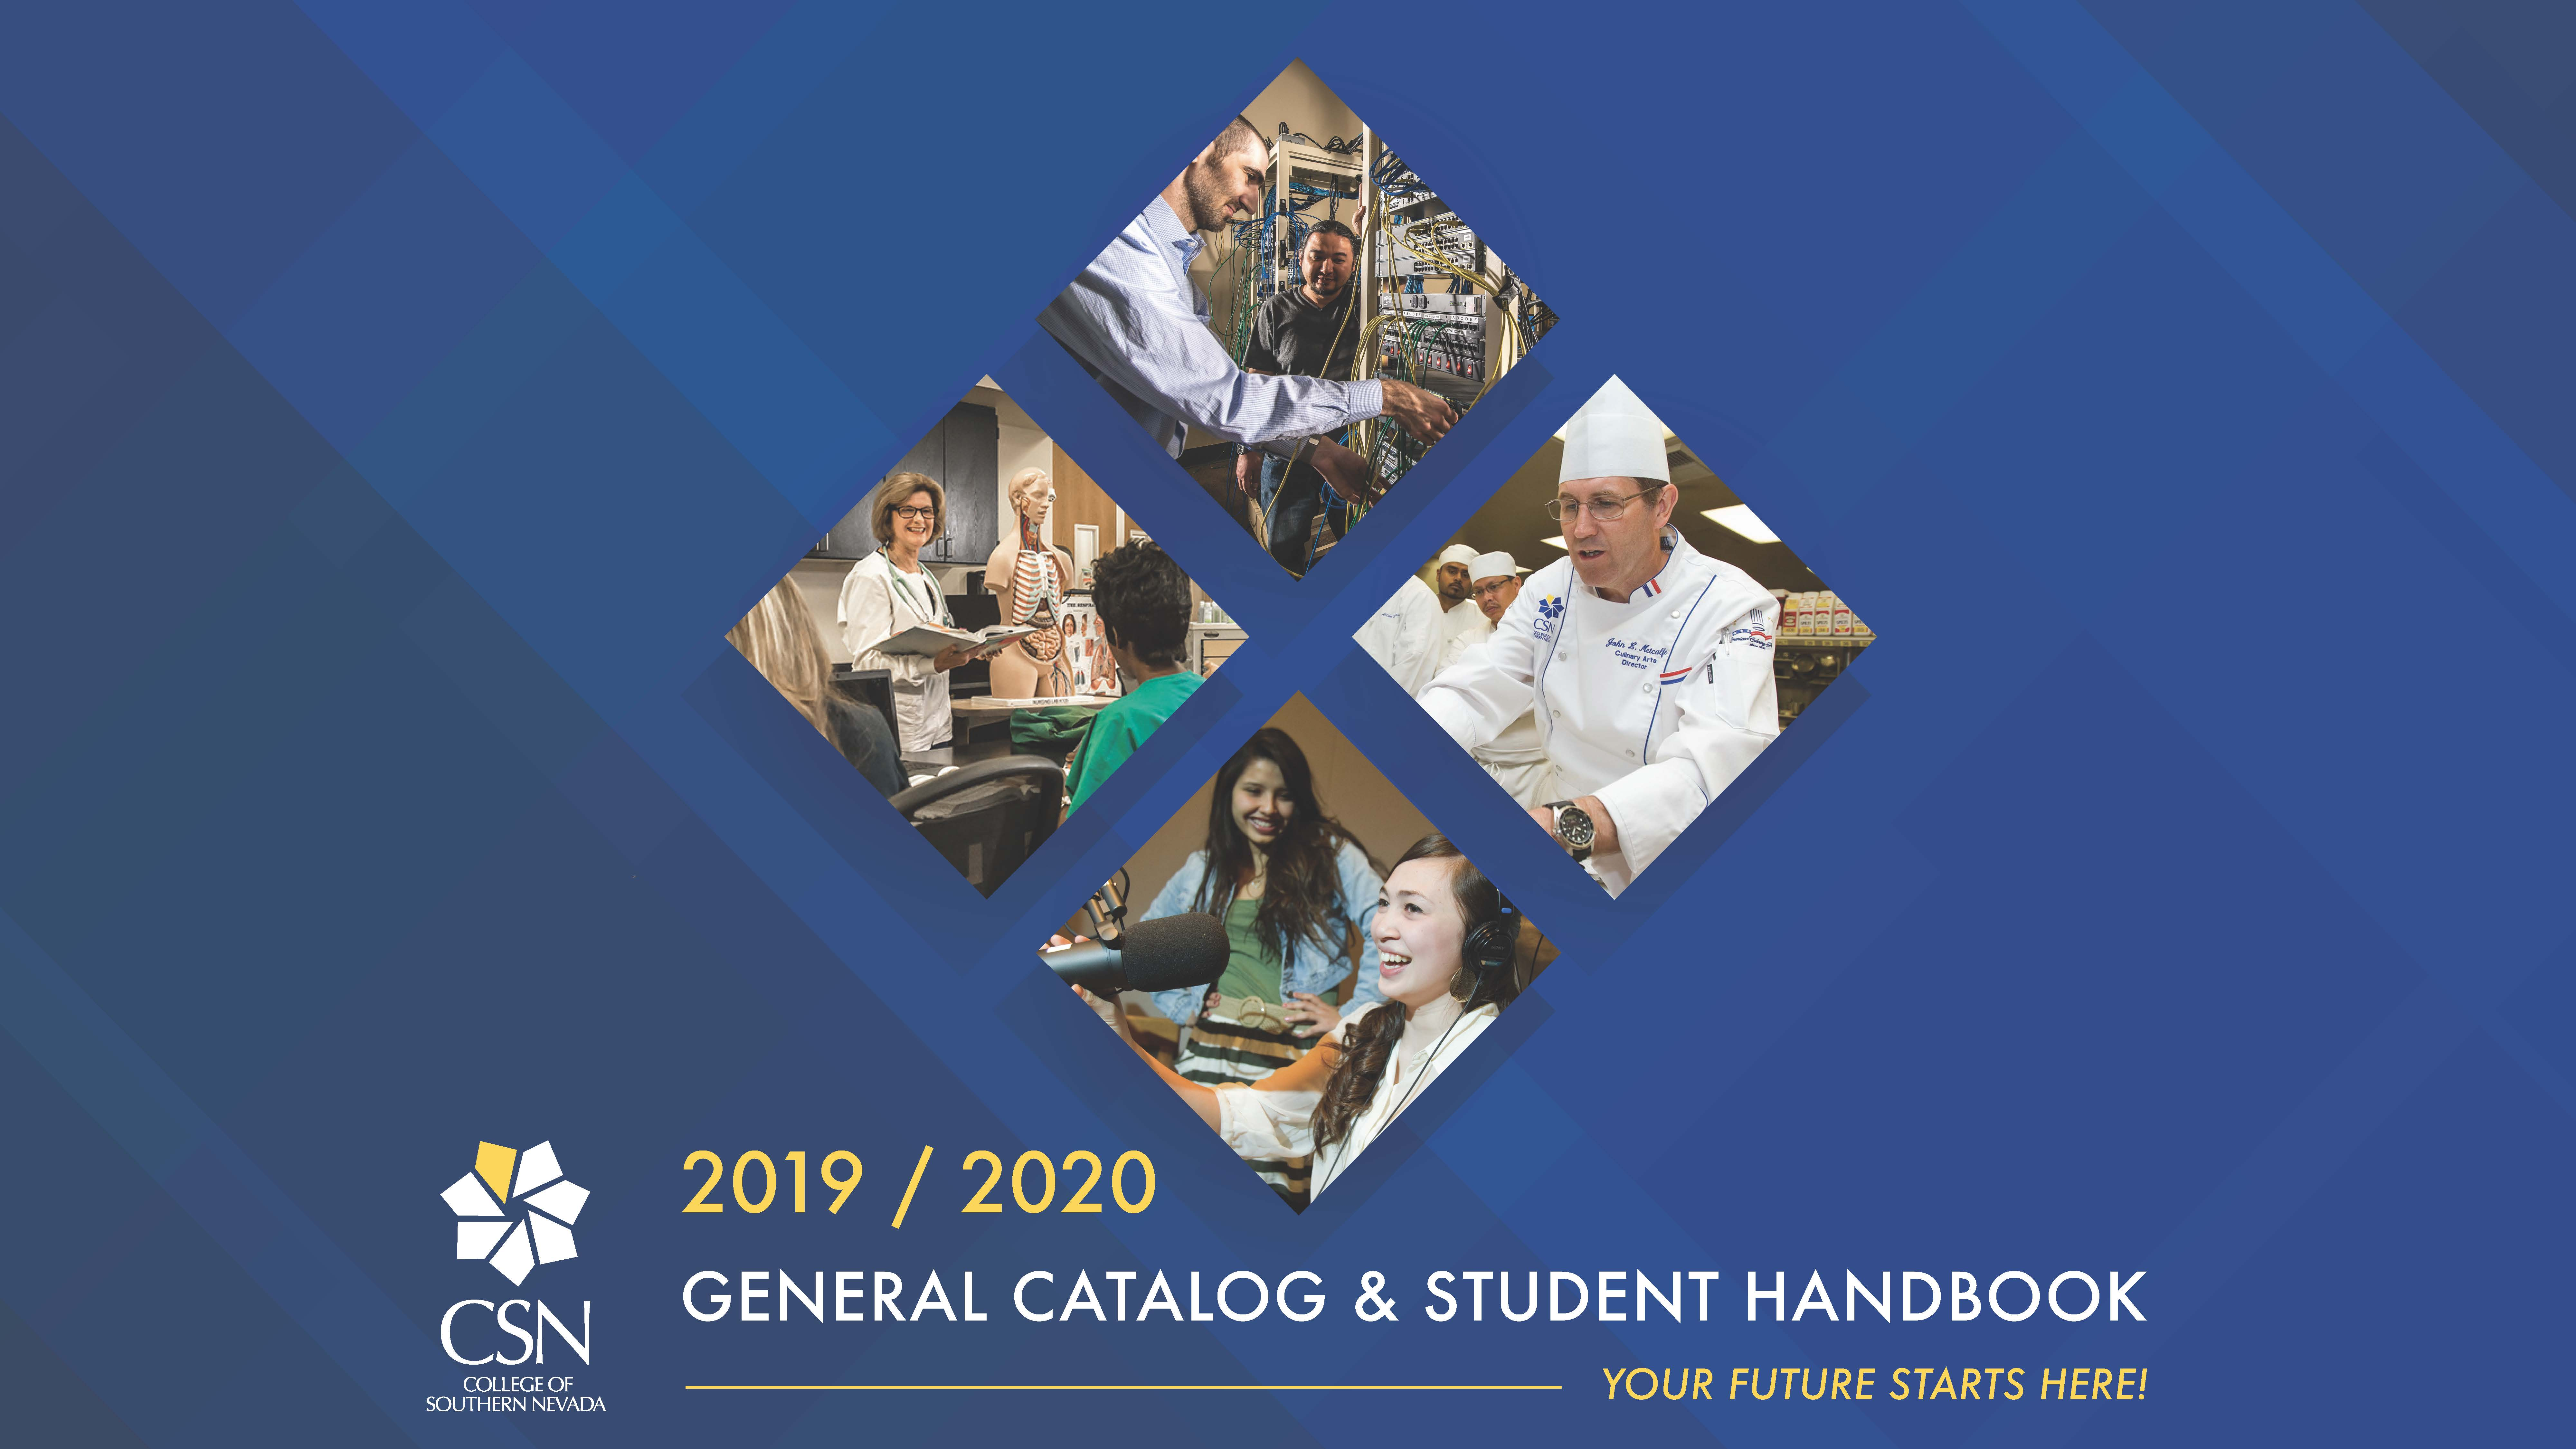 2019-2020 Catalog Cover Image with Students in Classes